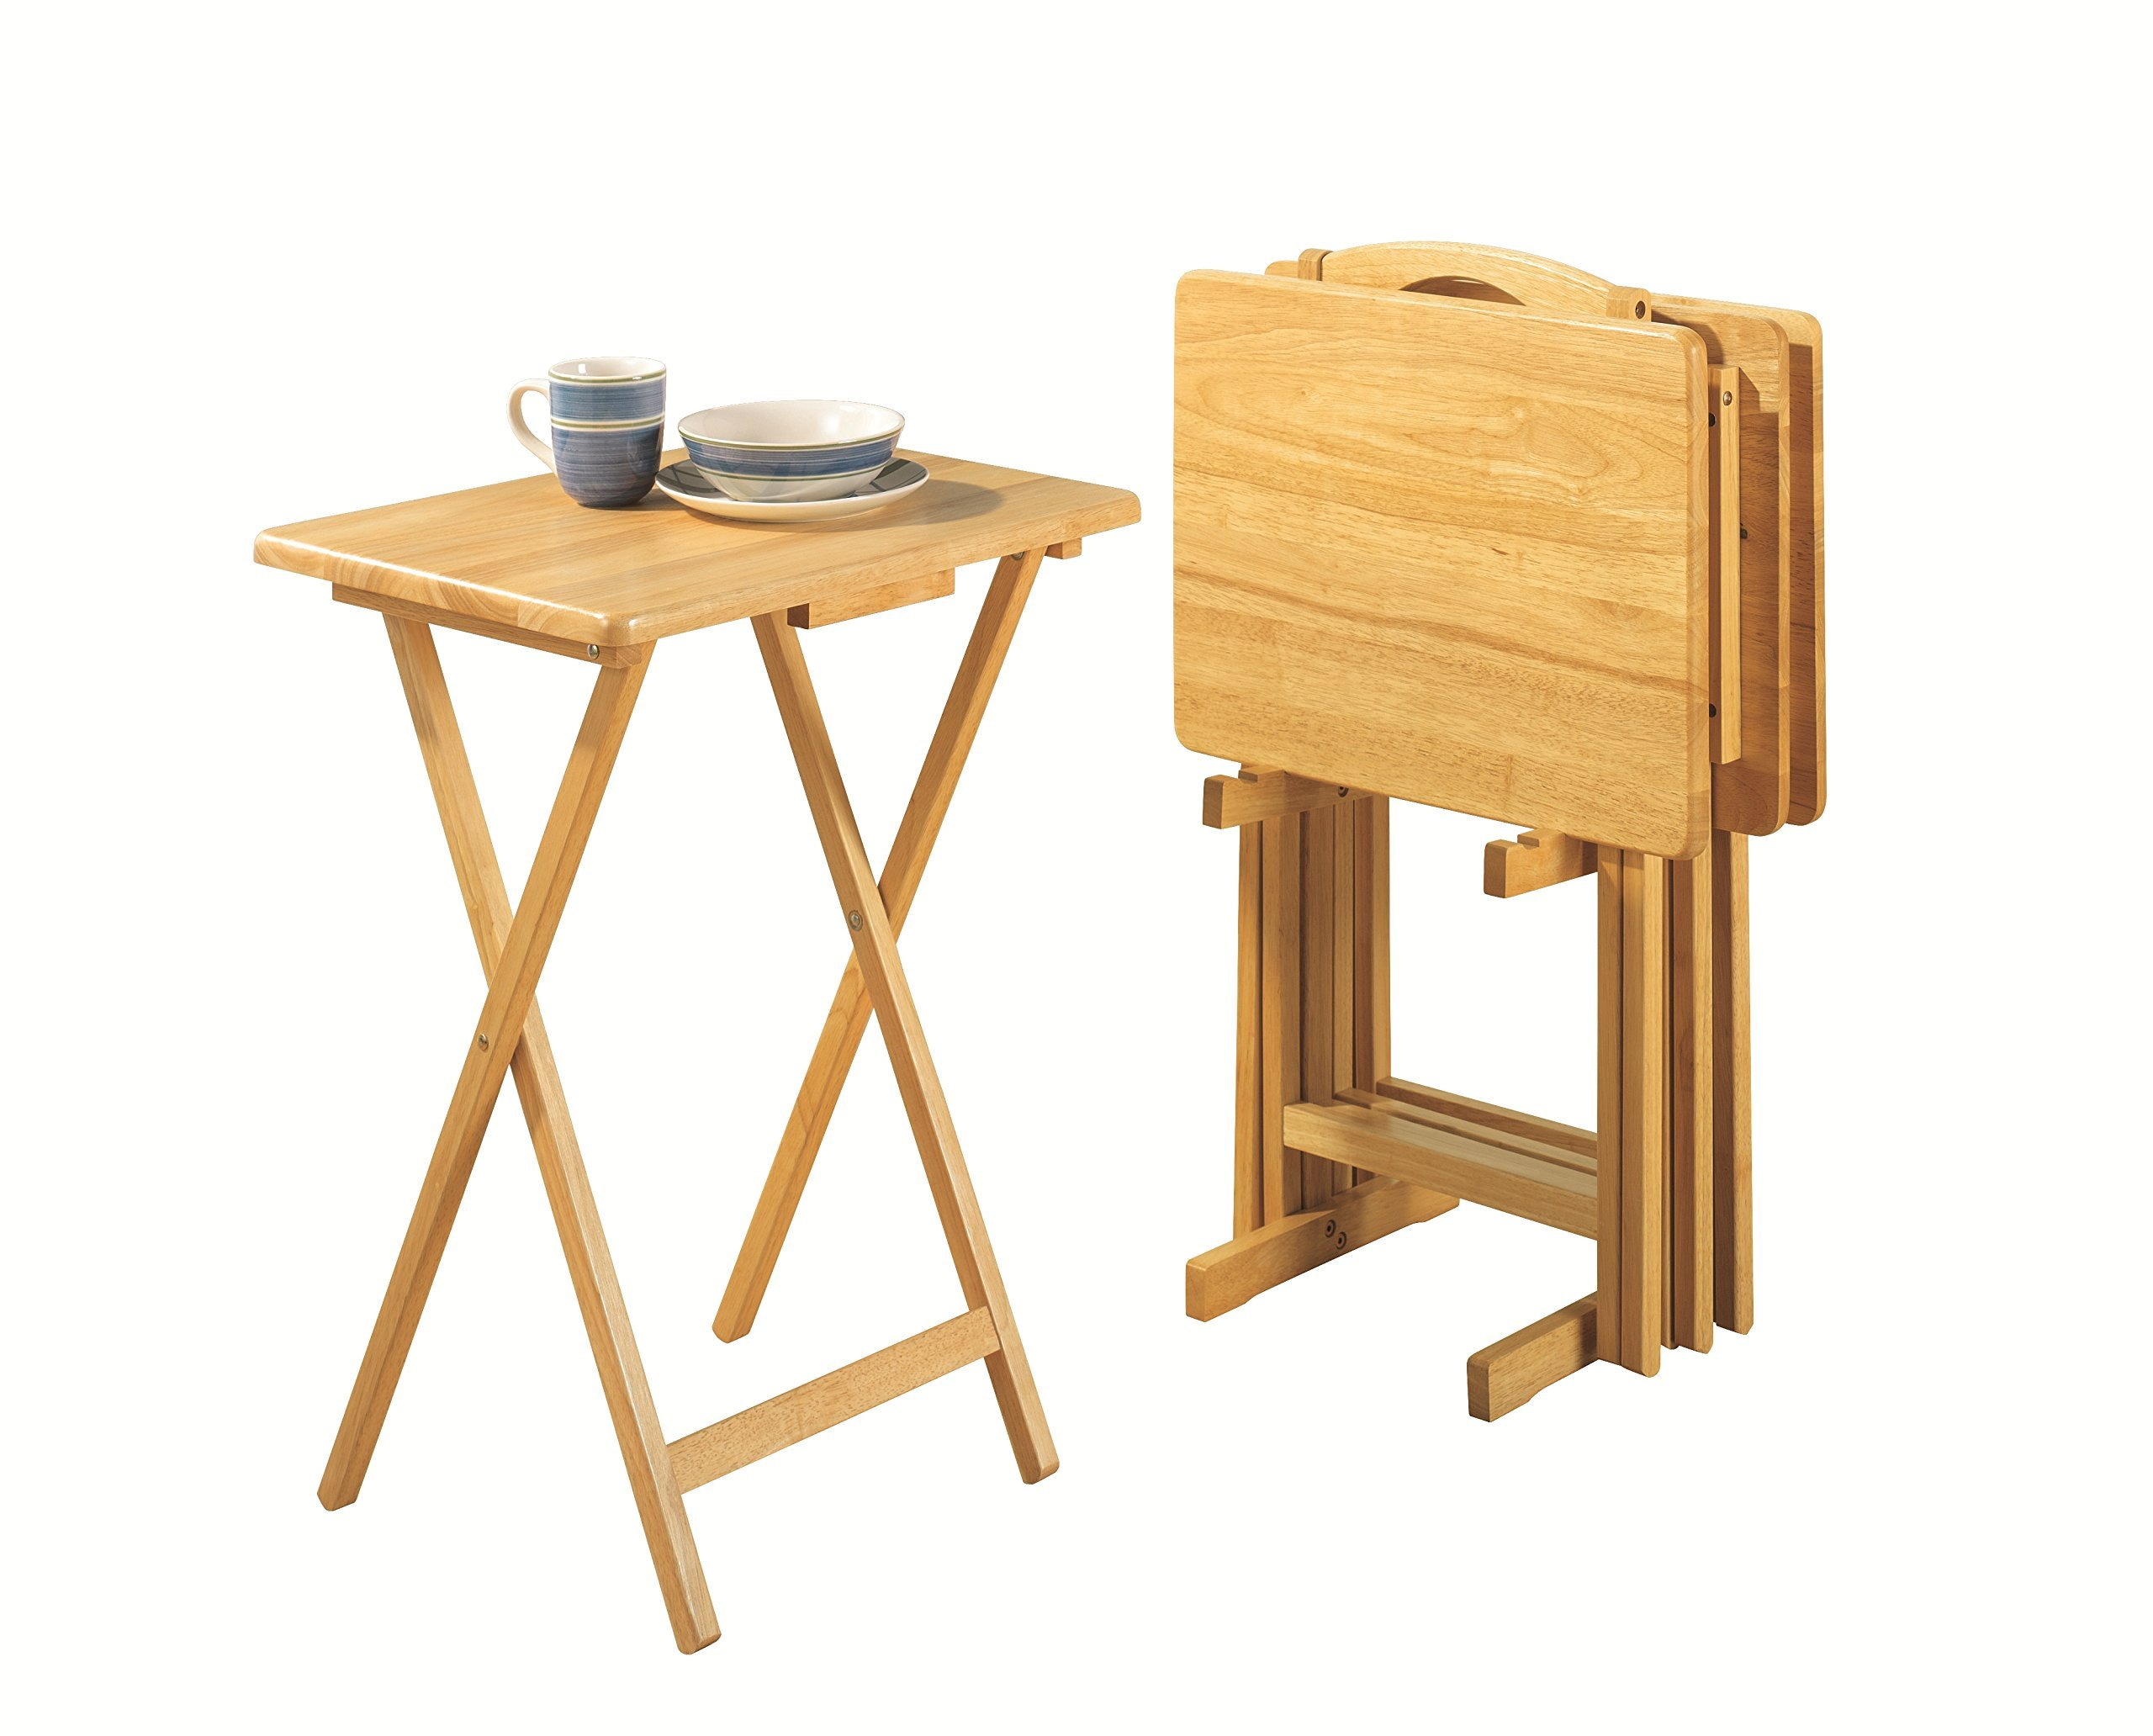 PJ Wood 5-piece Folding TV Tray & Snack Table - Natural by PJ Wood